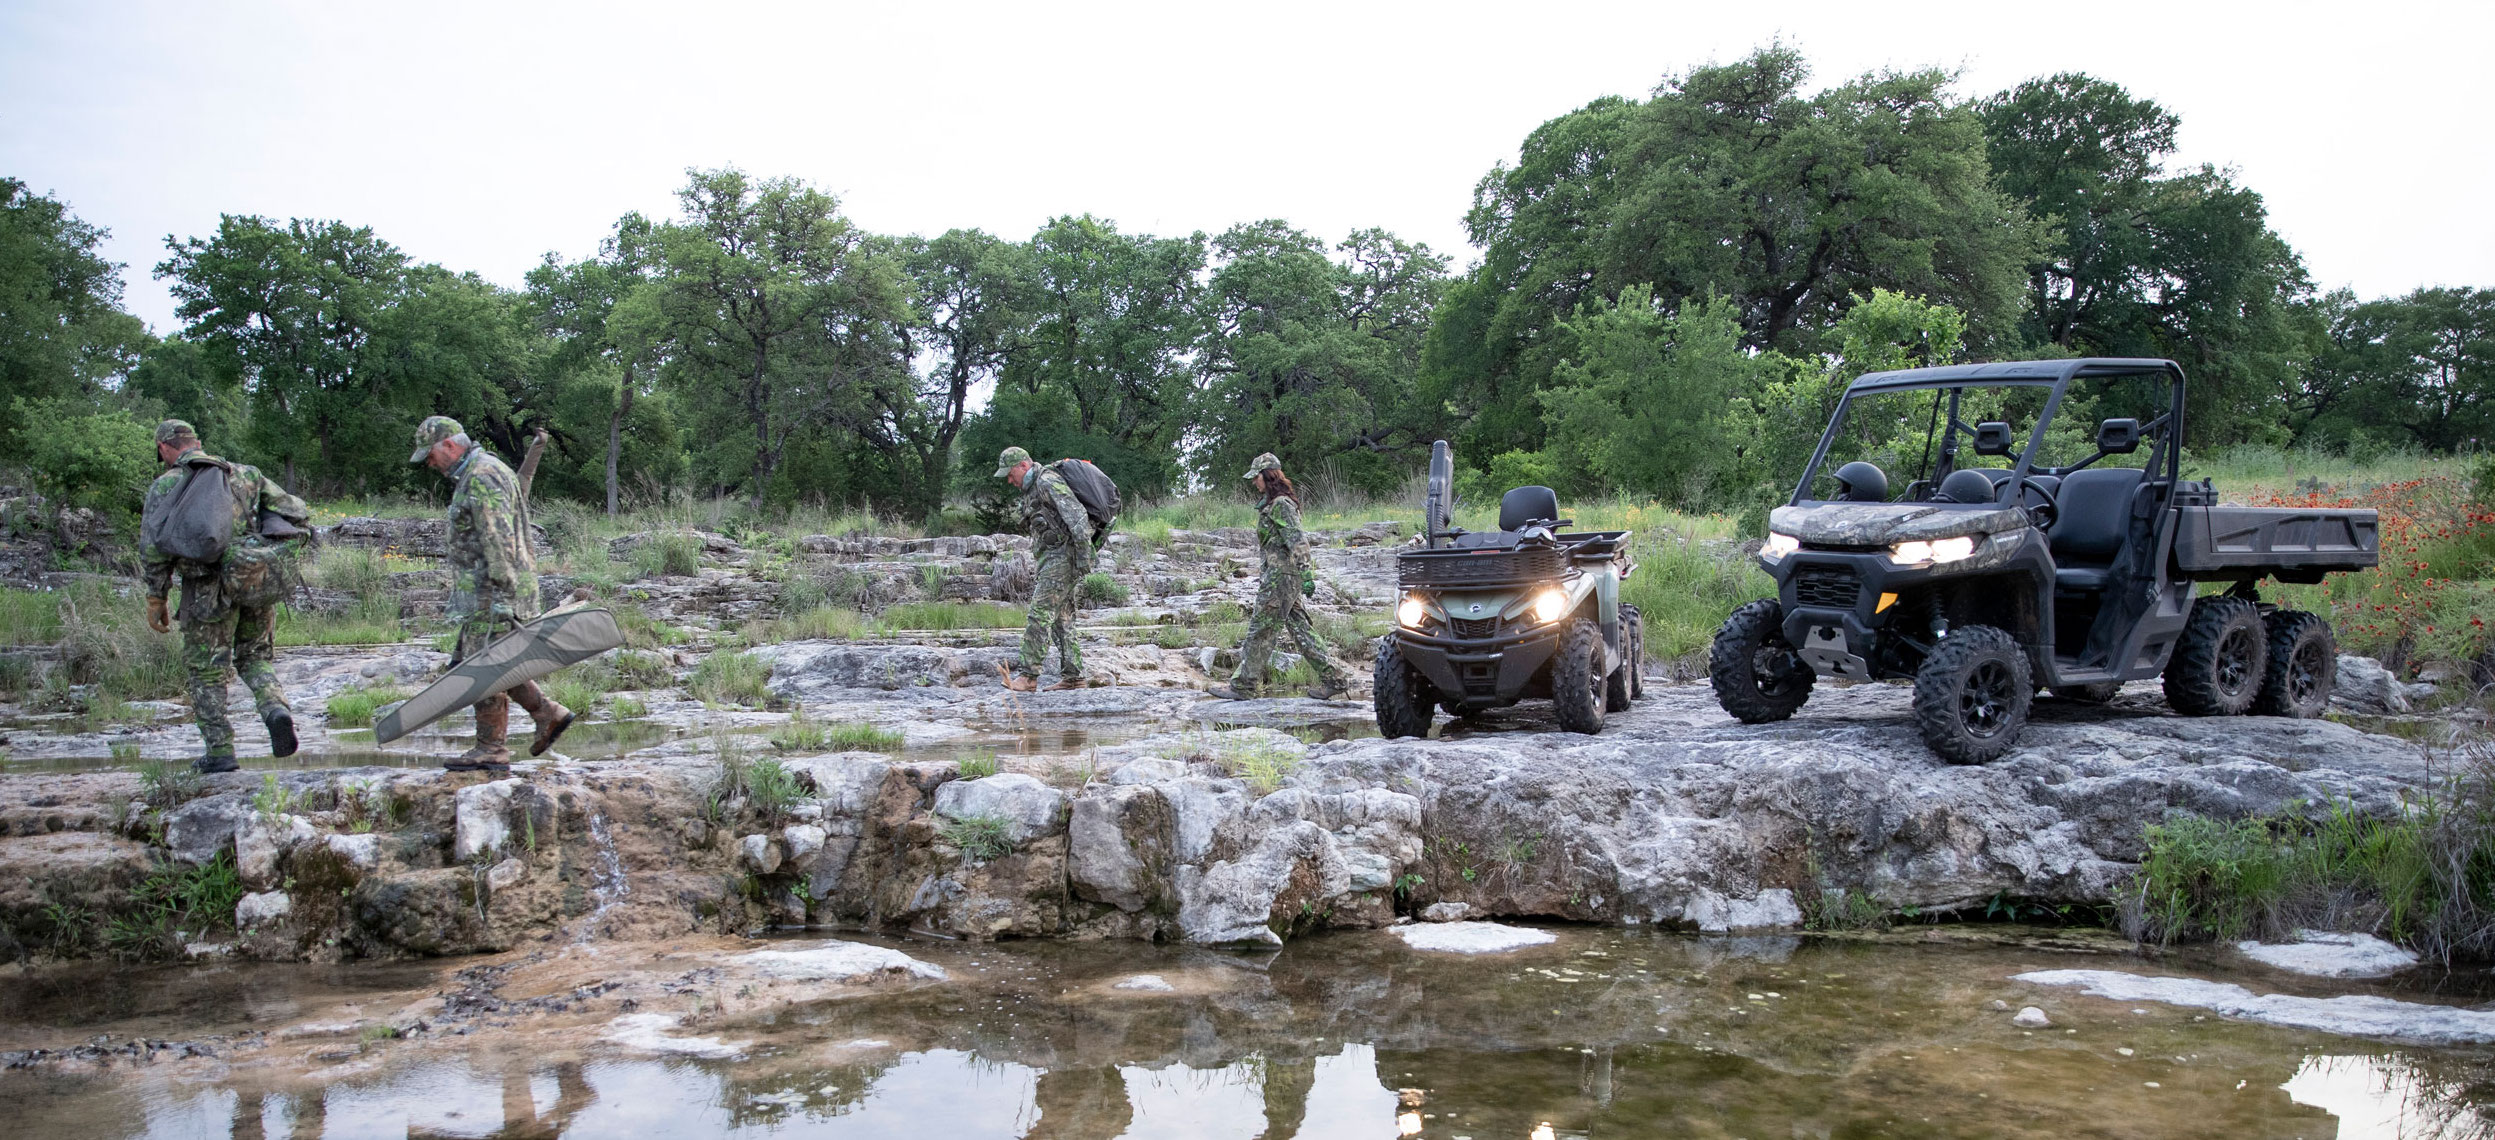 A group of hunters walking beside their Can-Am Outlander ATV and Can-Am Defender side-by-side